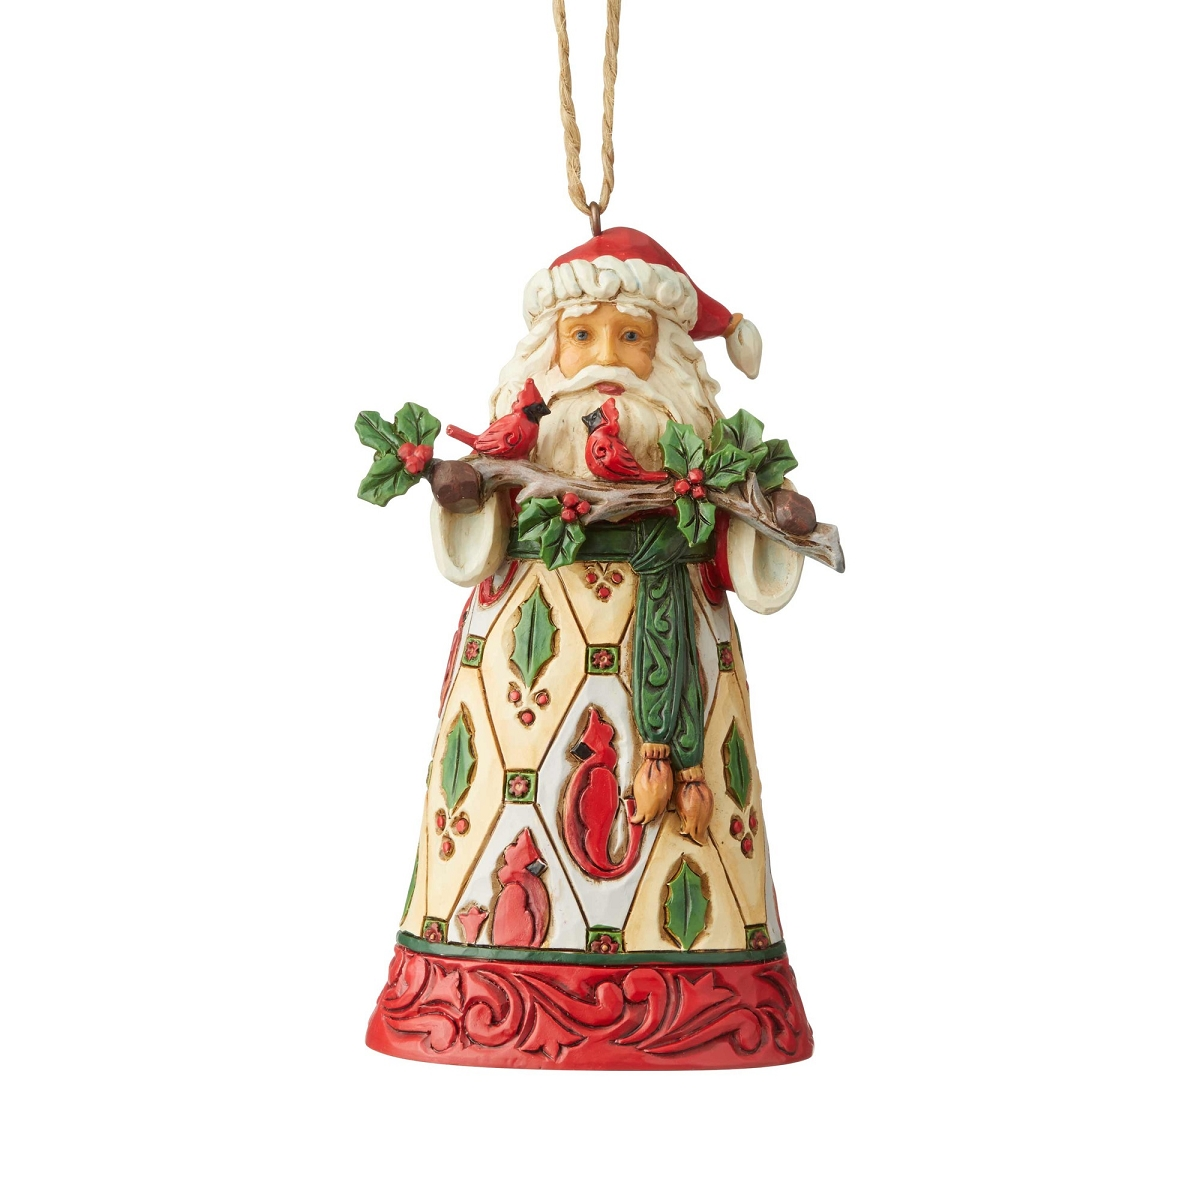 Jim Shore 2020 Christmas Ornament Santa with Cardinals Jim Shore Heartwood Creek Christmas Ornament